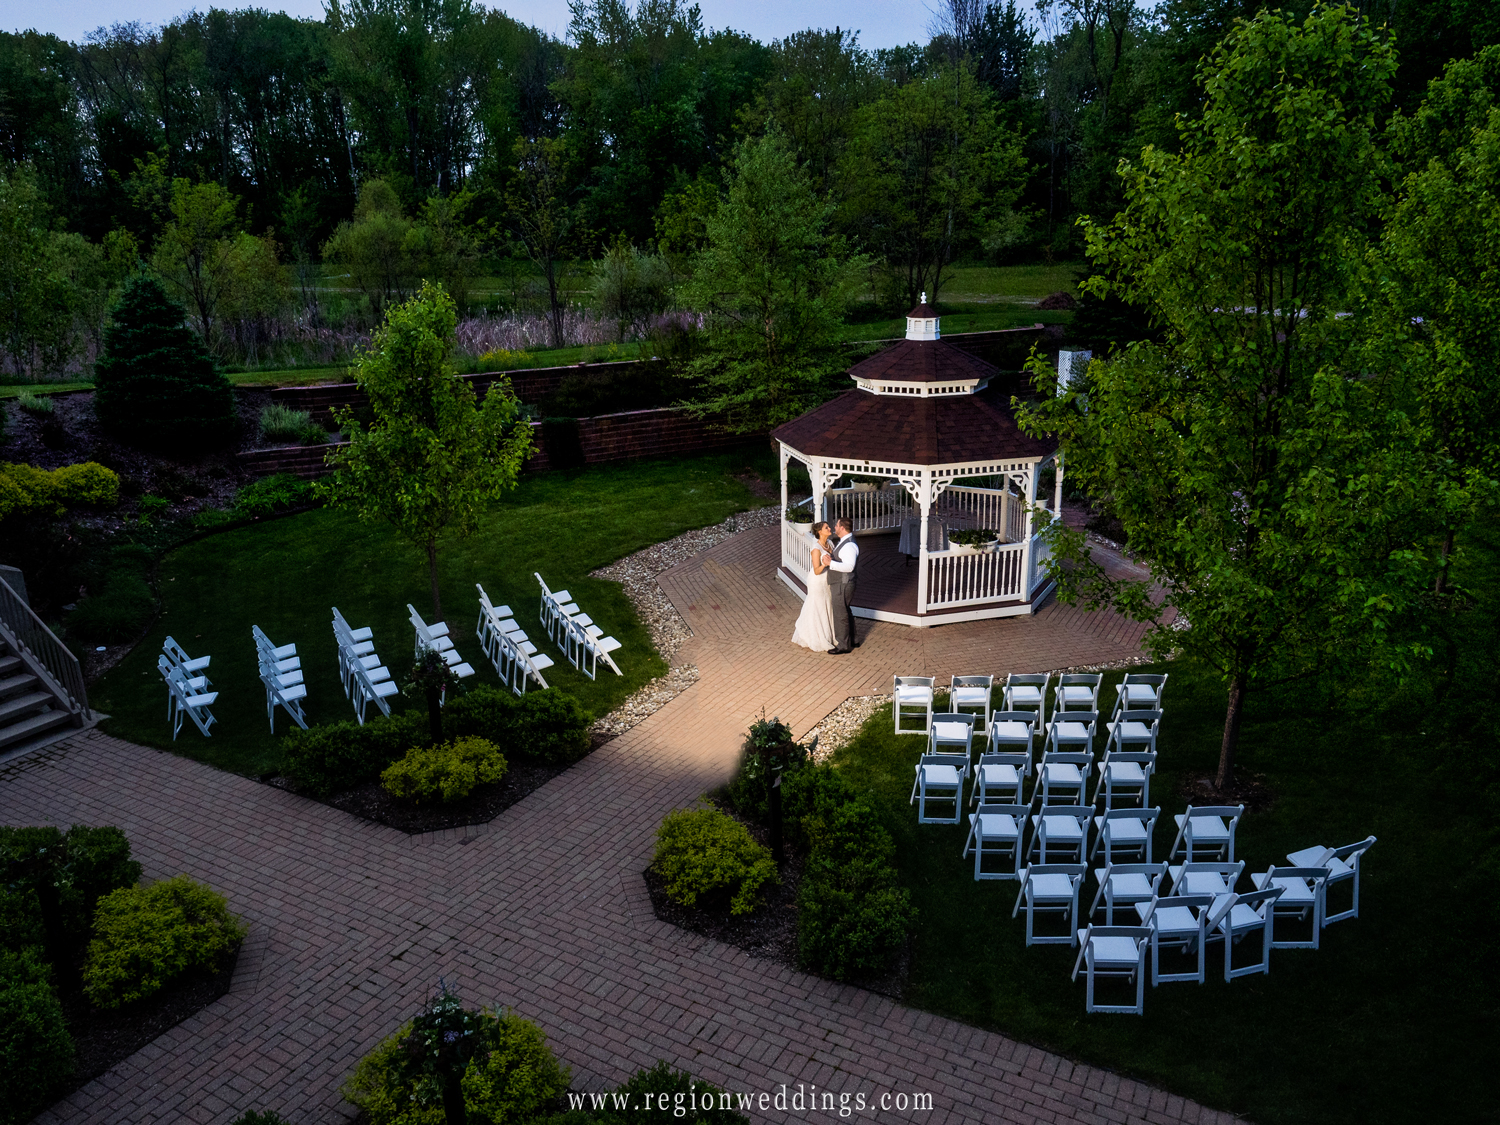 The bride and groom dance at twilight in front of the gazebo at Trinity Hall.